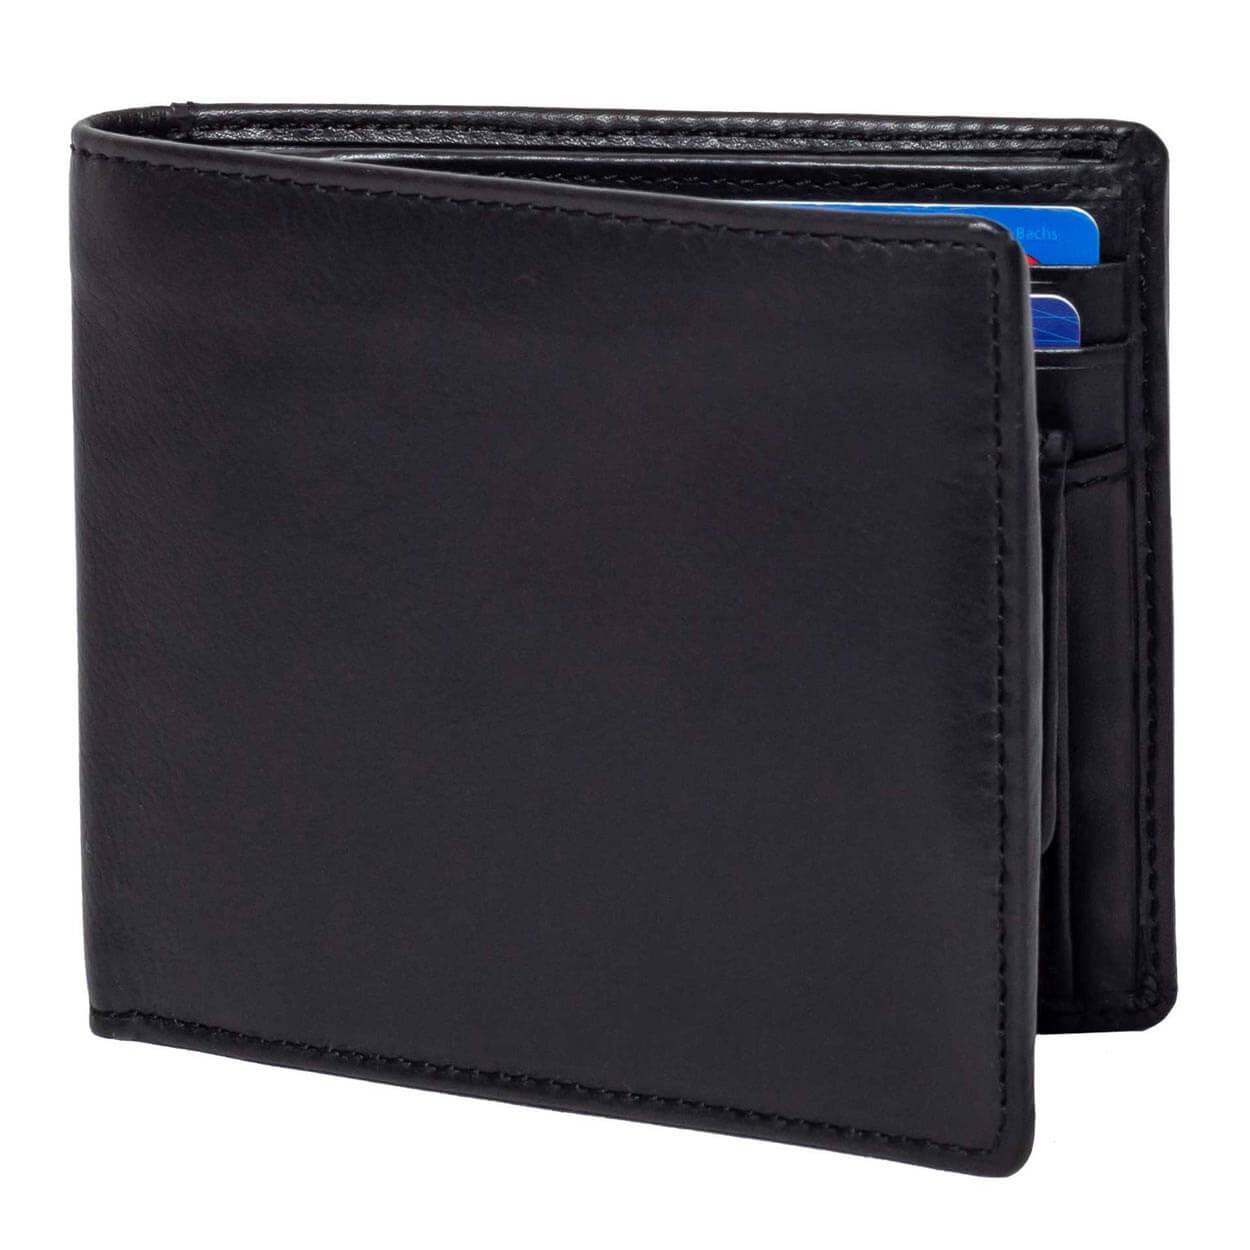 DiLoro Leather Bifold Wallet with Back Slip Pocket, Coin Section and RFID Protection